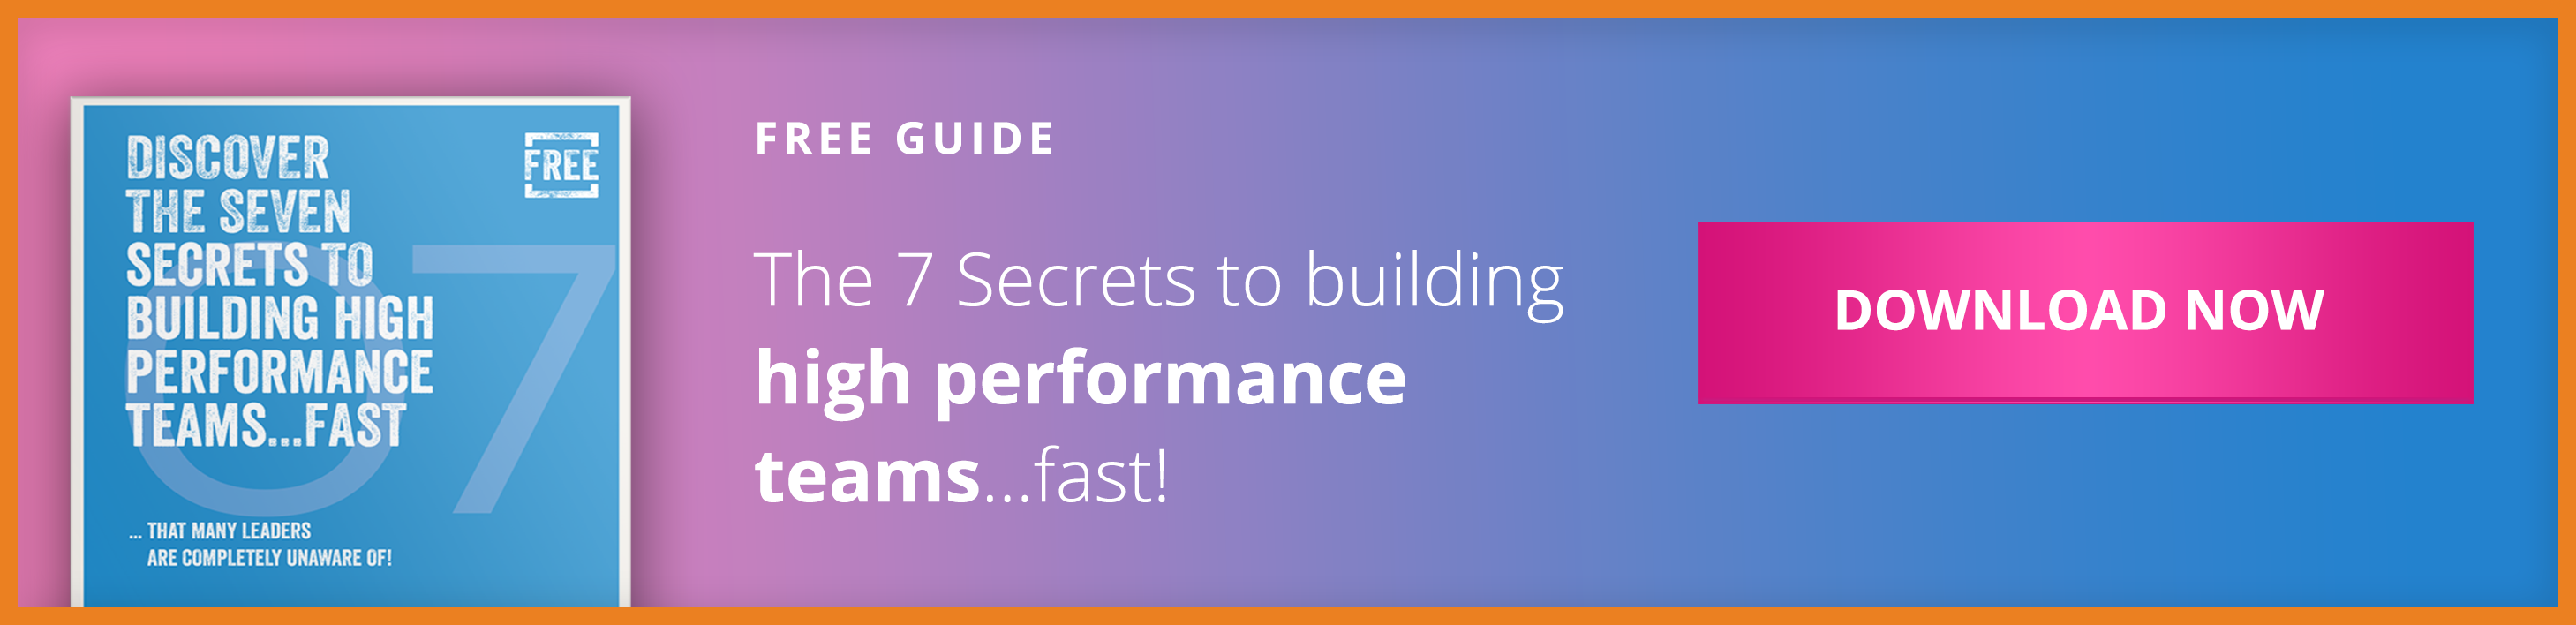 The Seven Secrets To Building High Performance Teams CTA